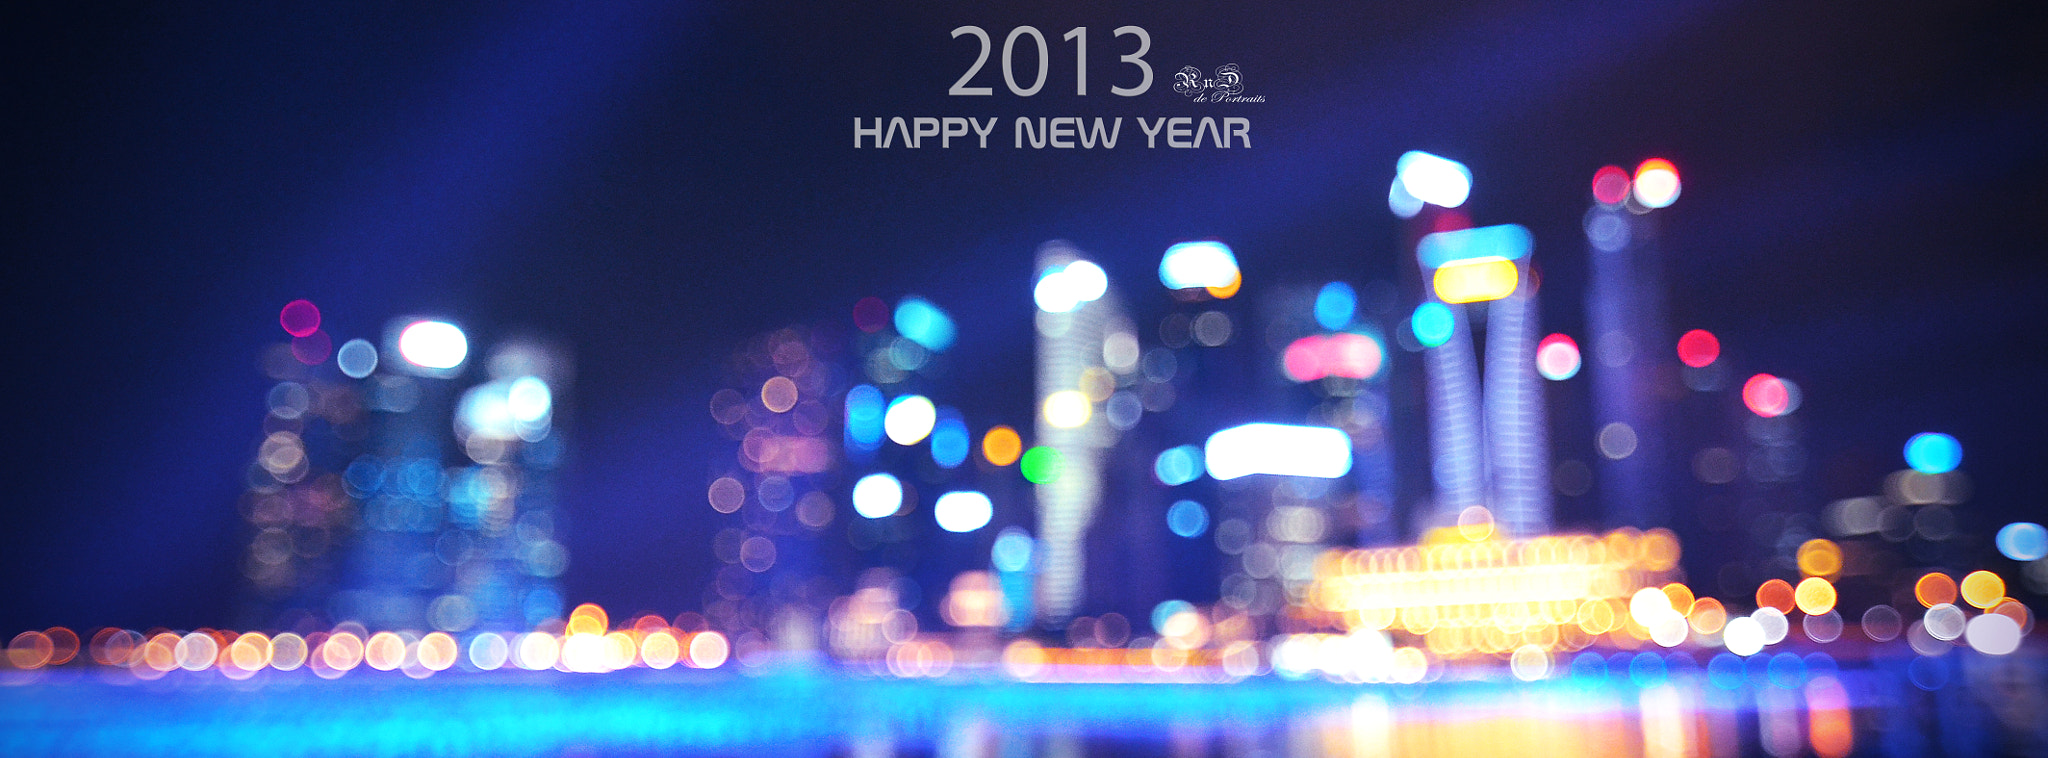 Photograph Happy New Year 2013 by RandyTan Travelogue on 500px